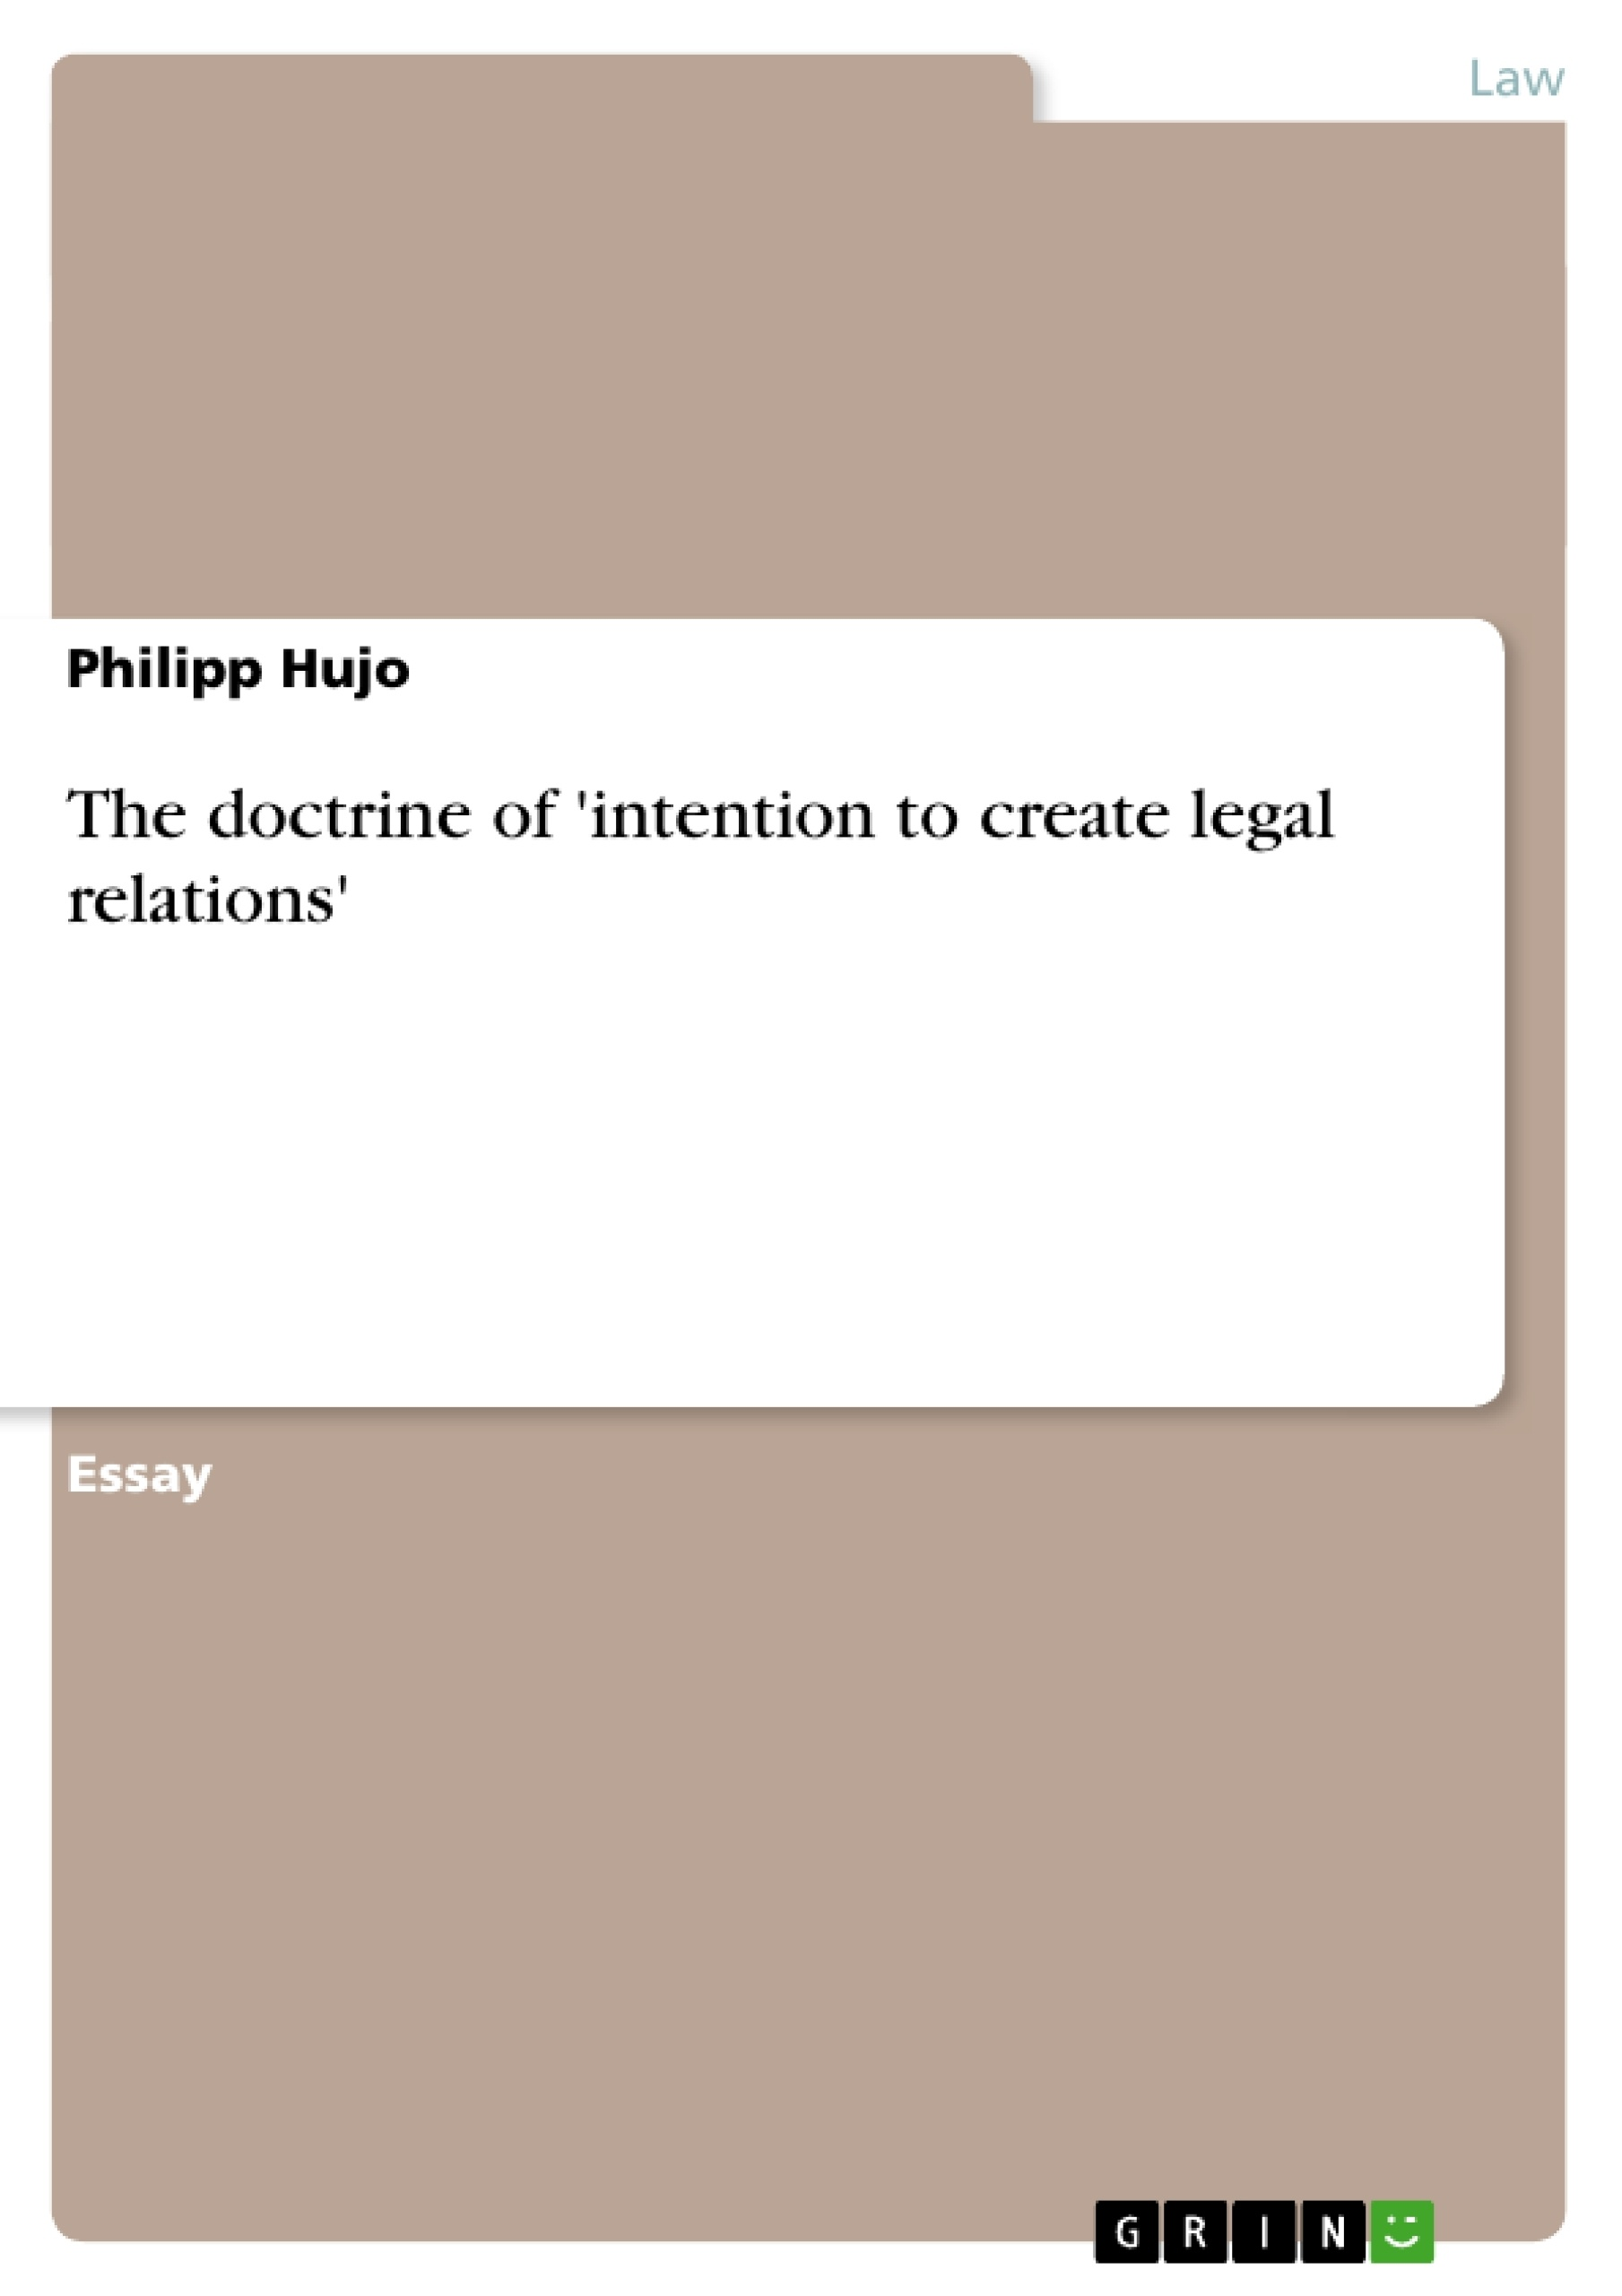 005 109929 0 Essay Example Intention To Create Legal Unbelievable Relations Full